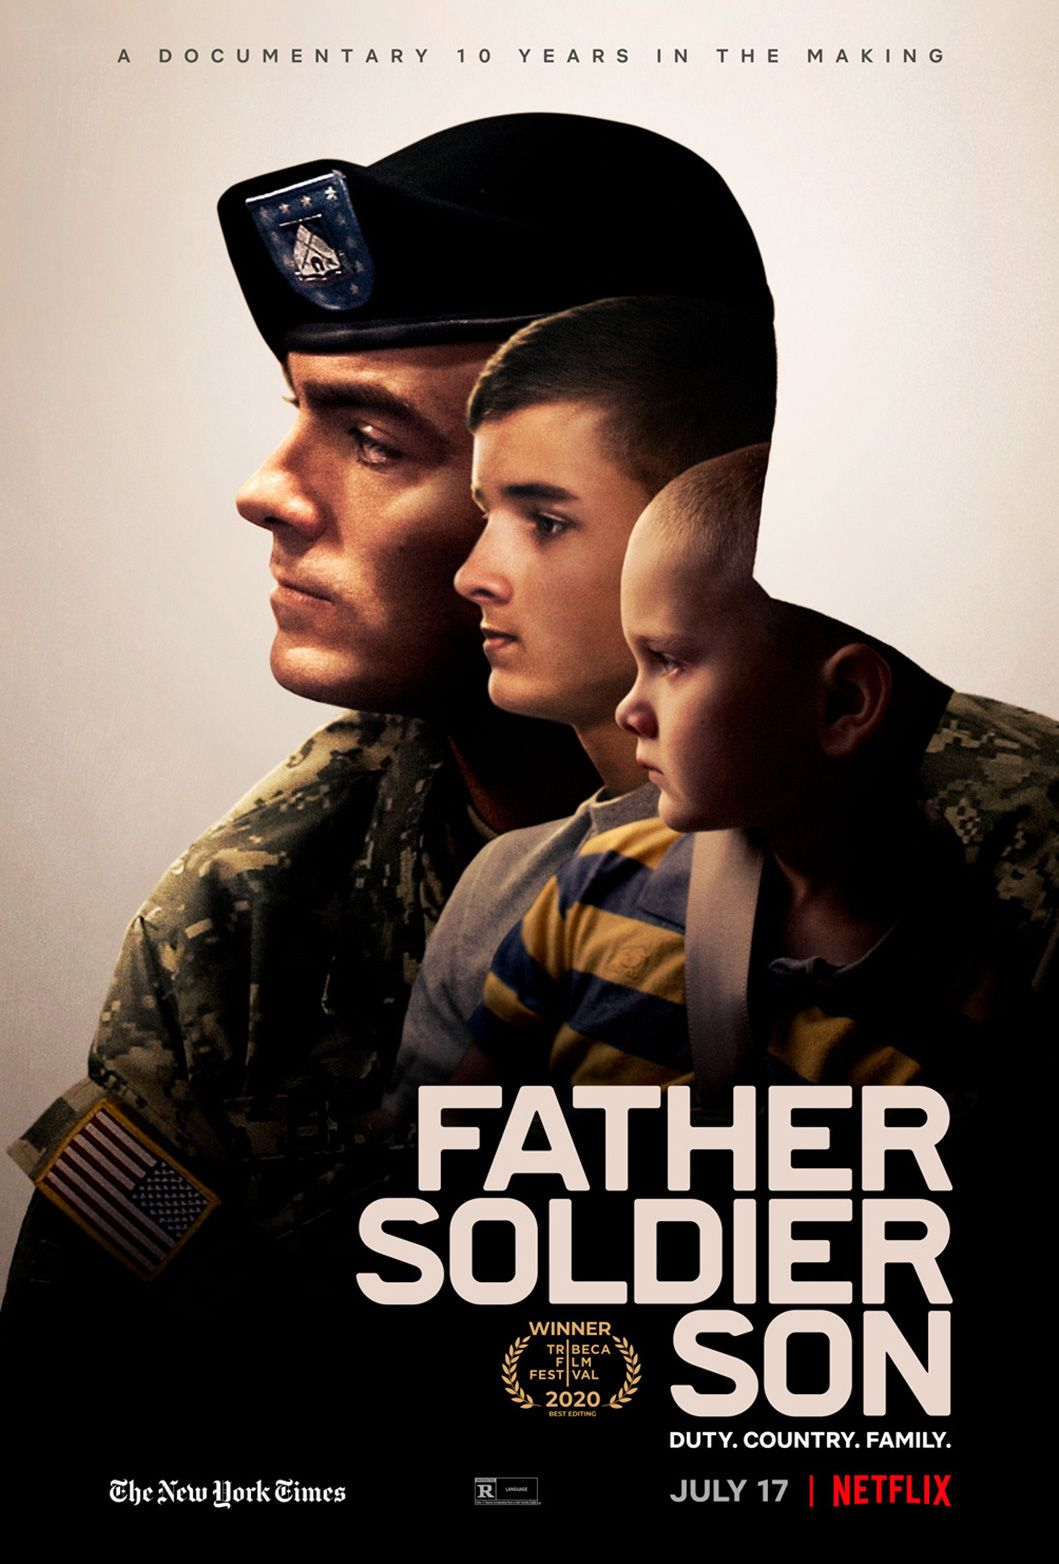 Father Soldier Son In 2021 Documentaries Father Sons